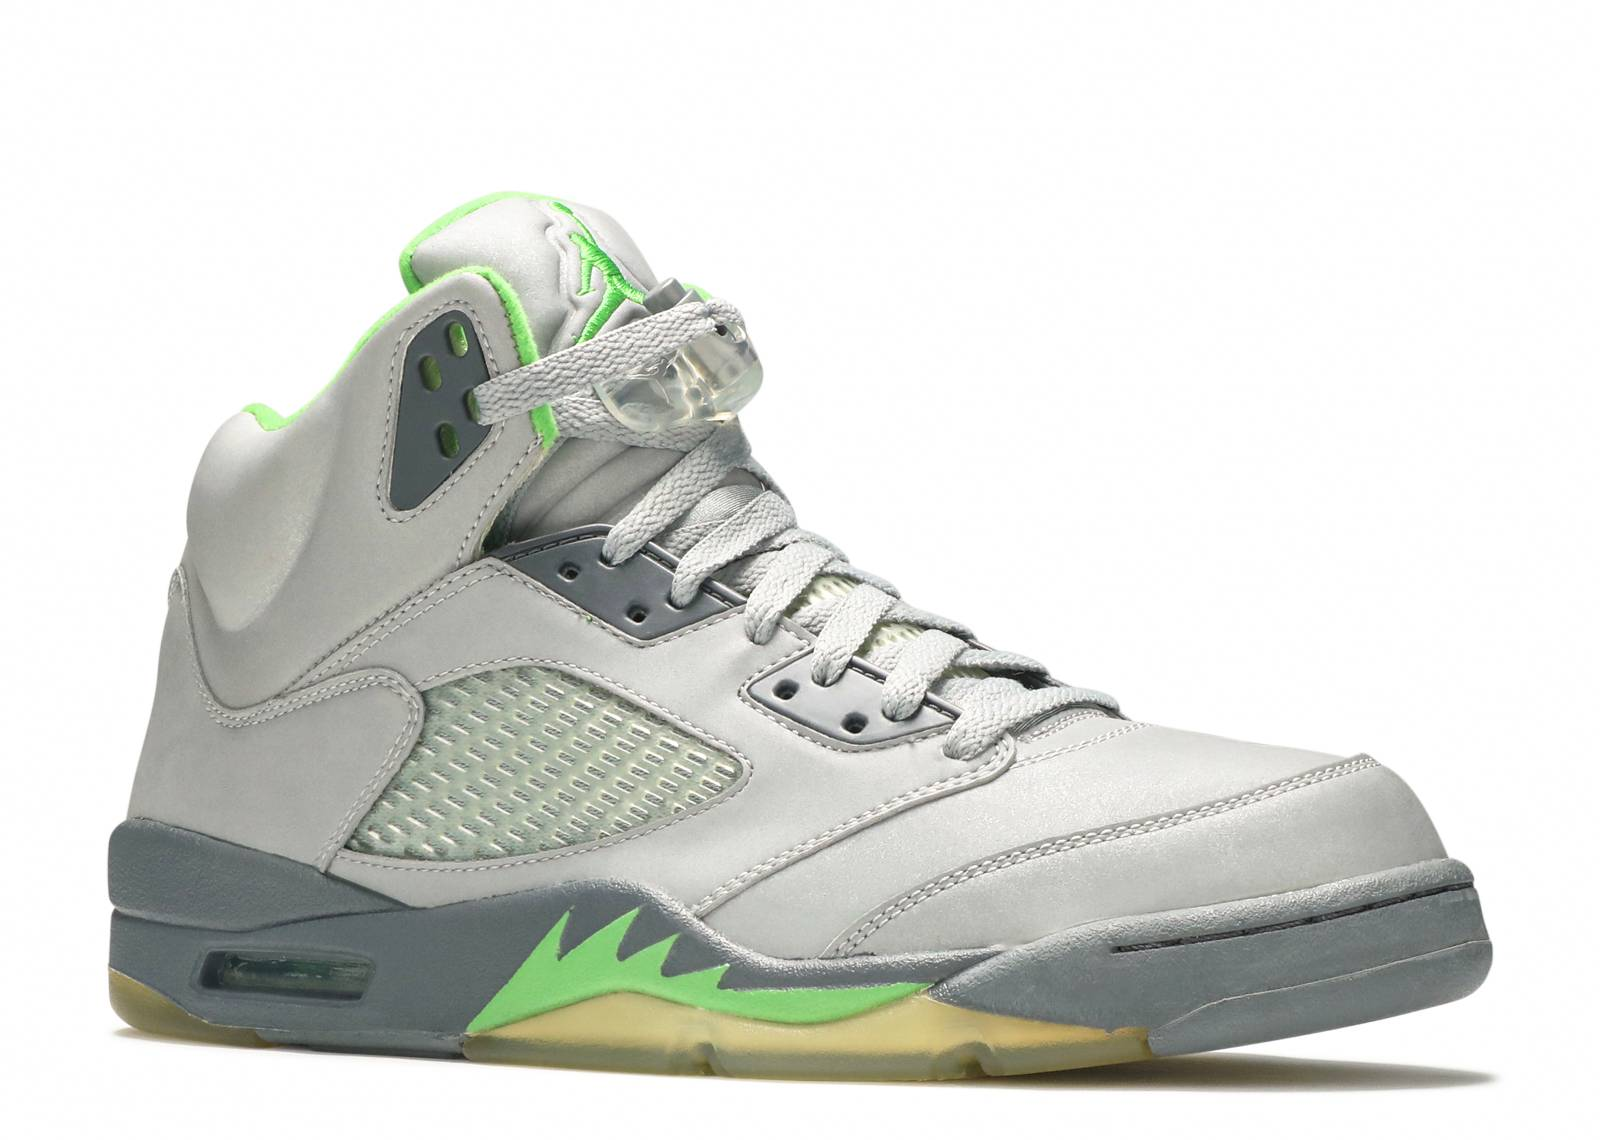 529f2c888915 ... best air jordan 5 retro green bean air jordan 136027 031 silver green  bean flint grey